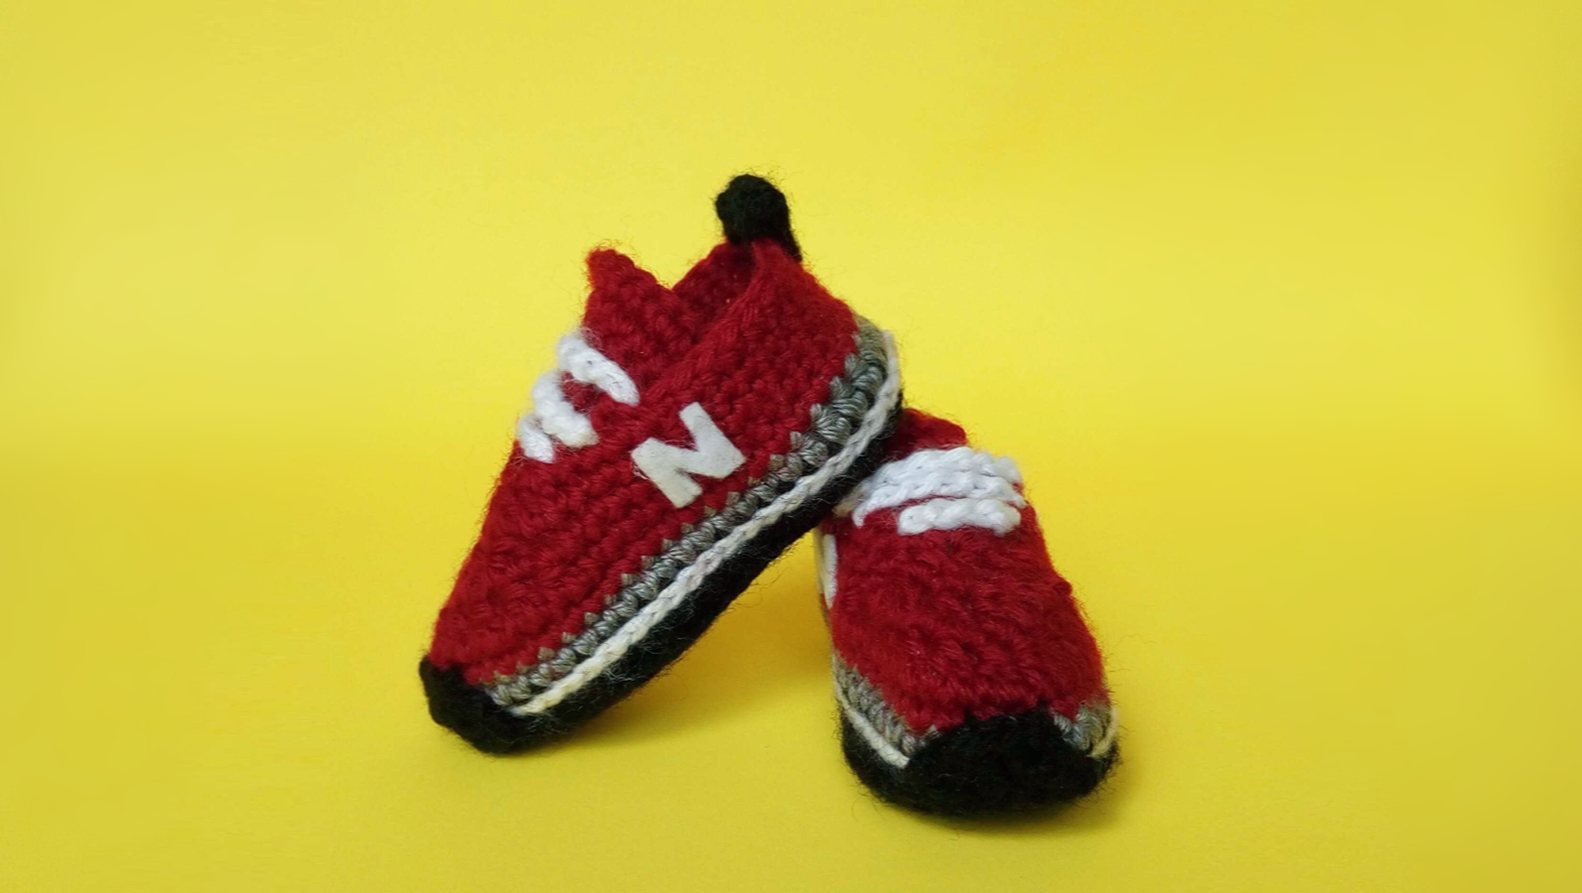 906dd3c68de Crochet Baby Sneakers Tutorial (2018) Crochet Tennis Shoes ...